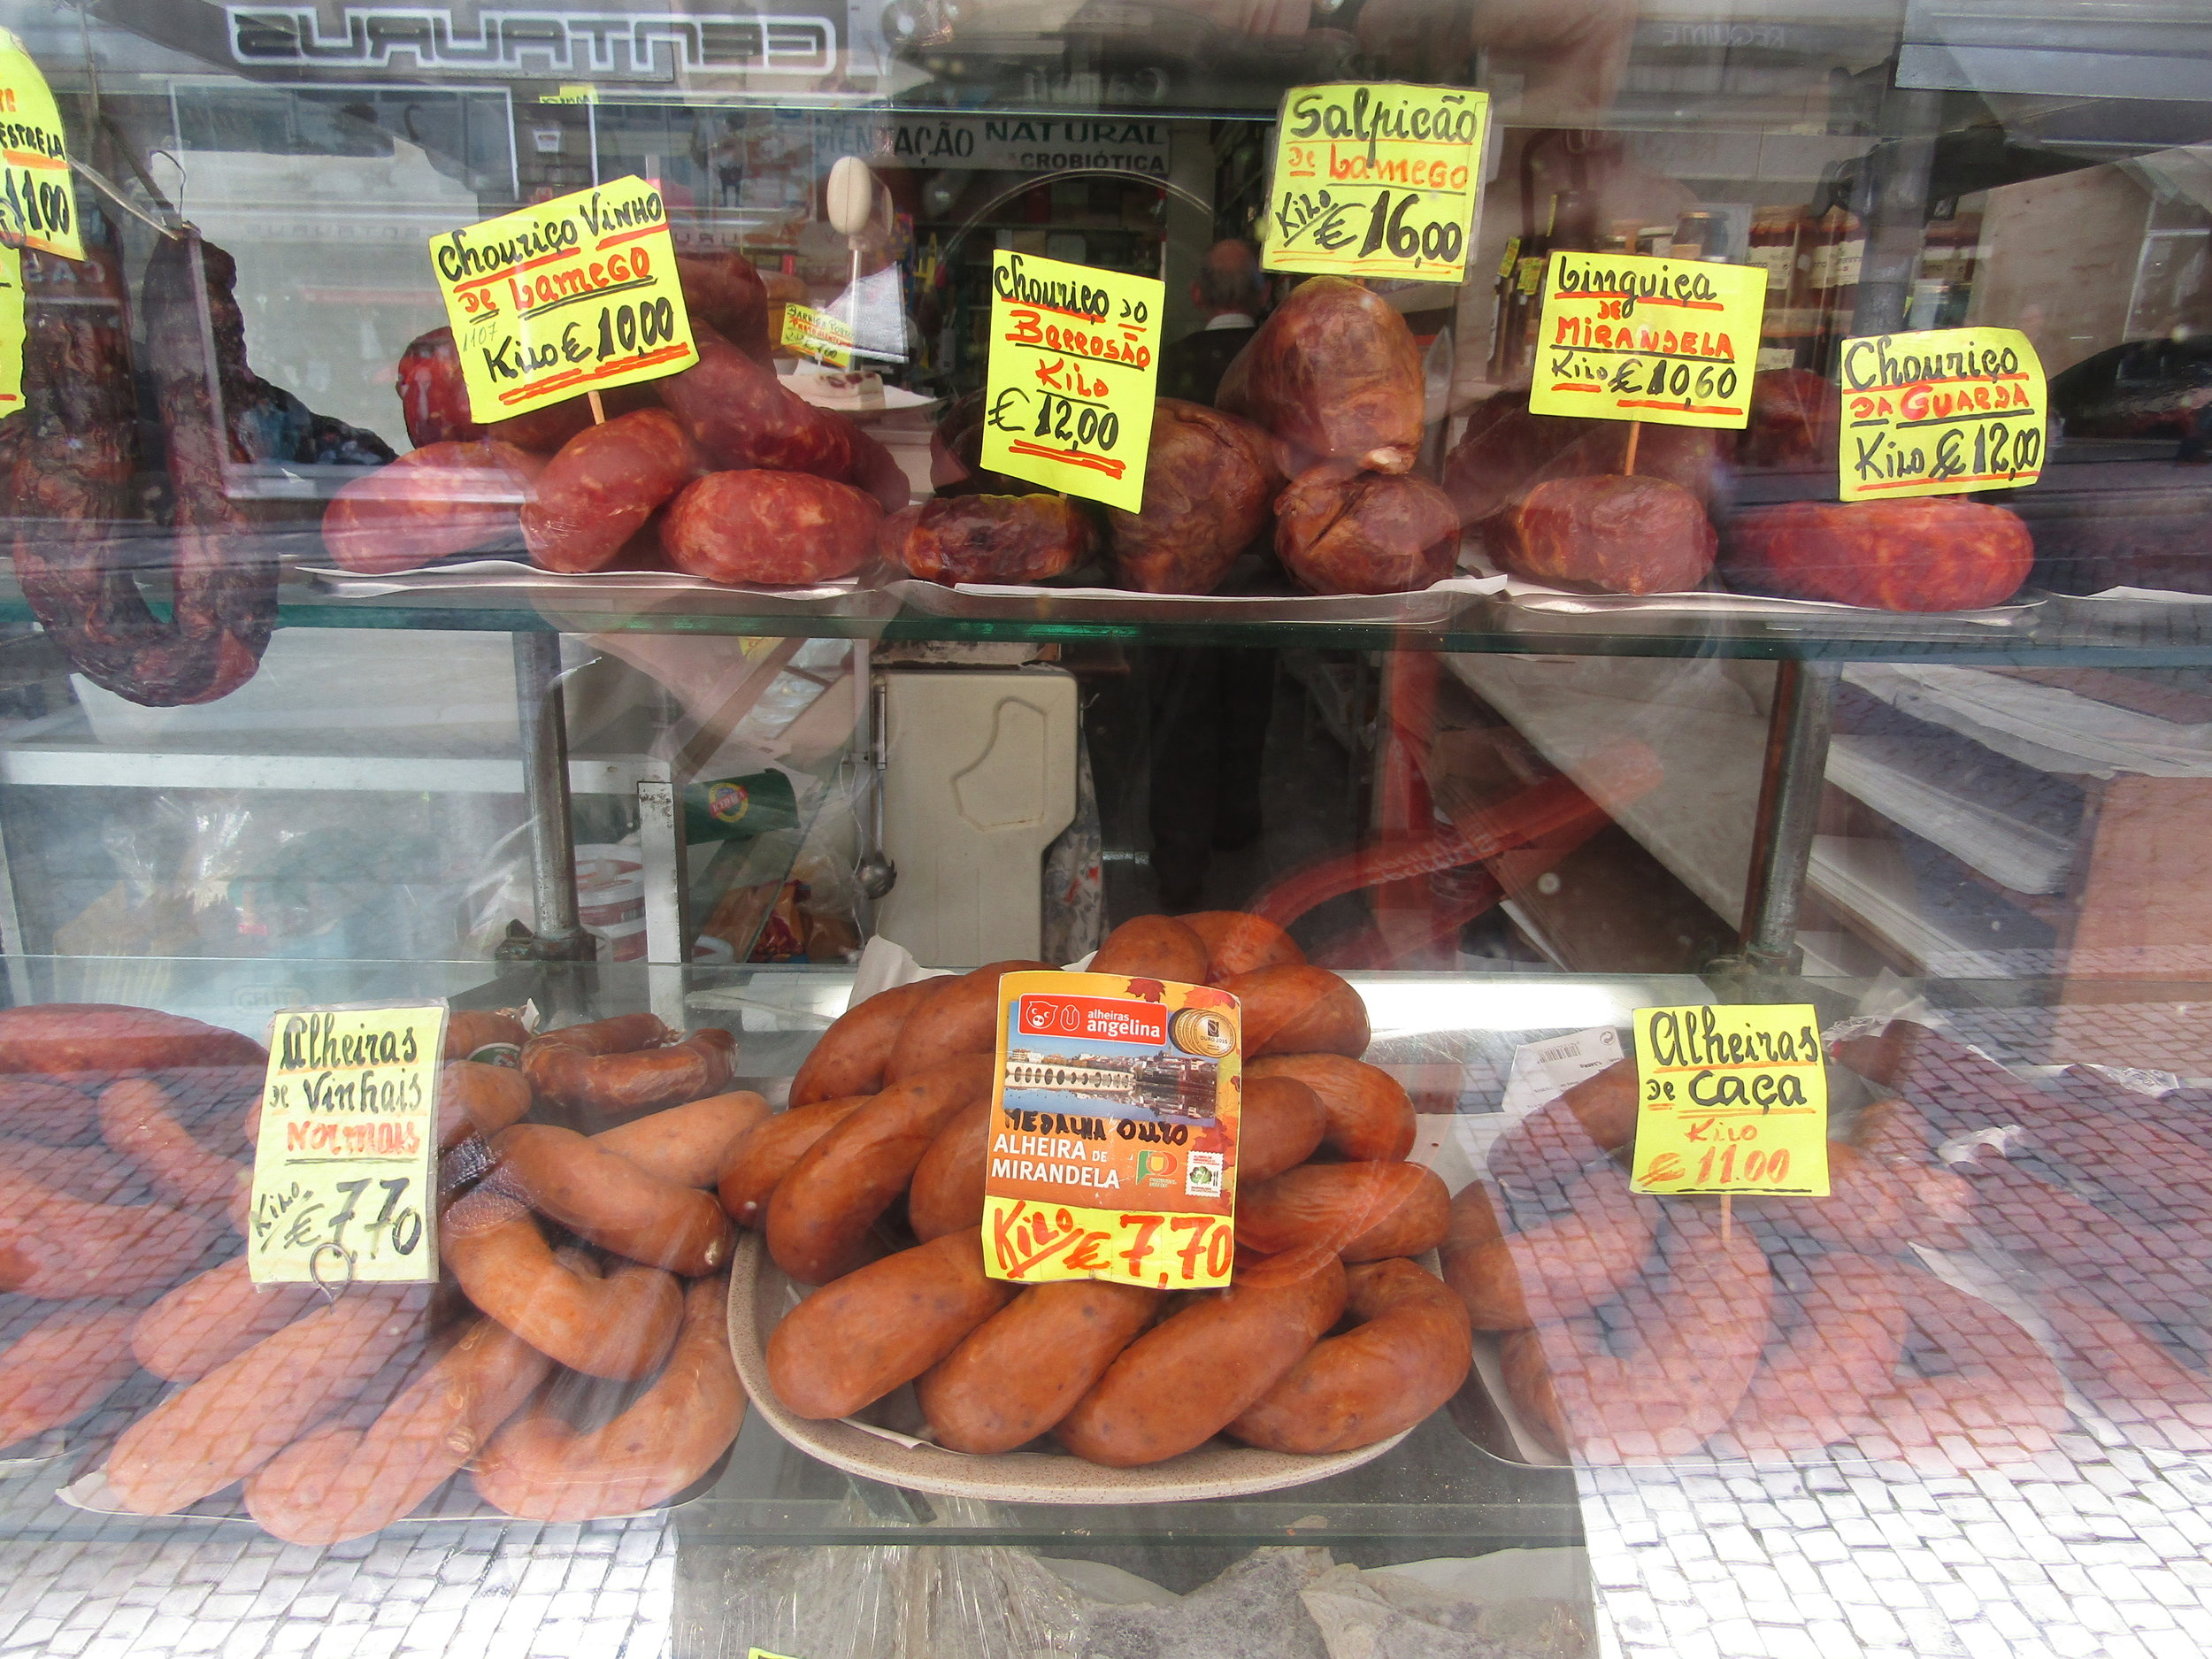 Sausage with pork, with chicken and bread, smoked or not…etc...